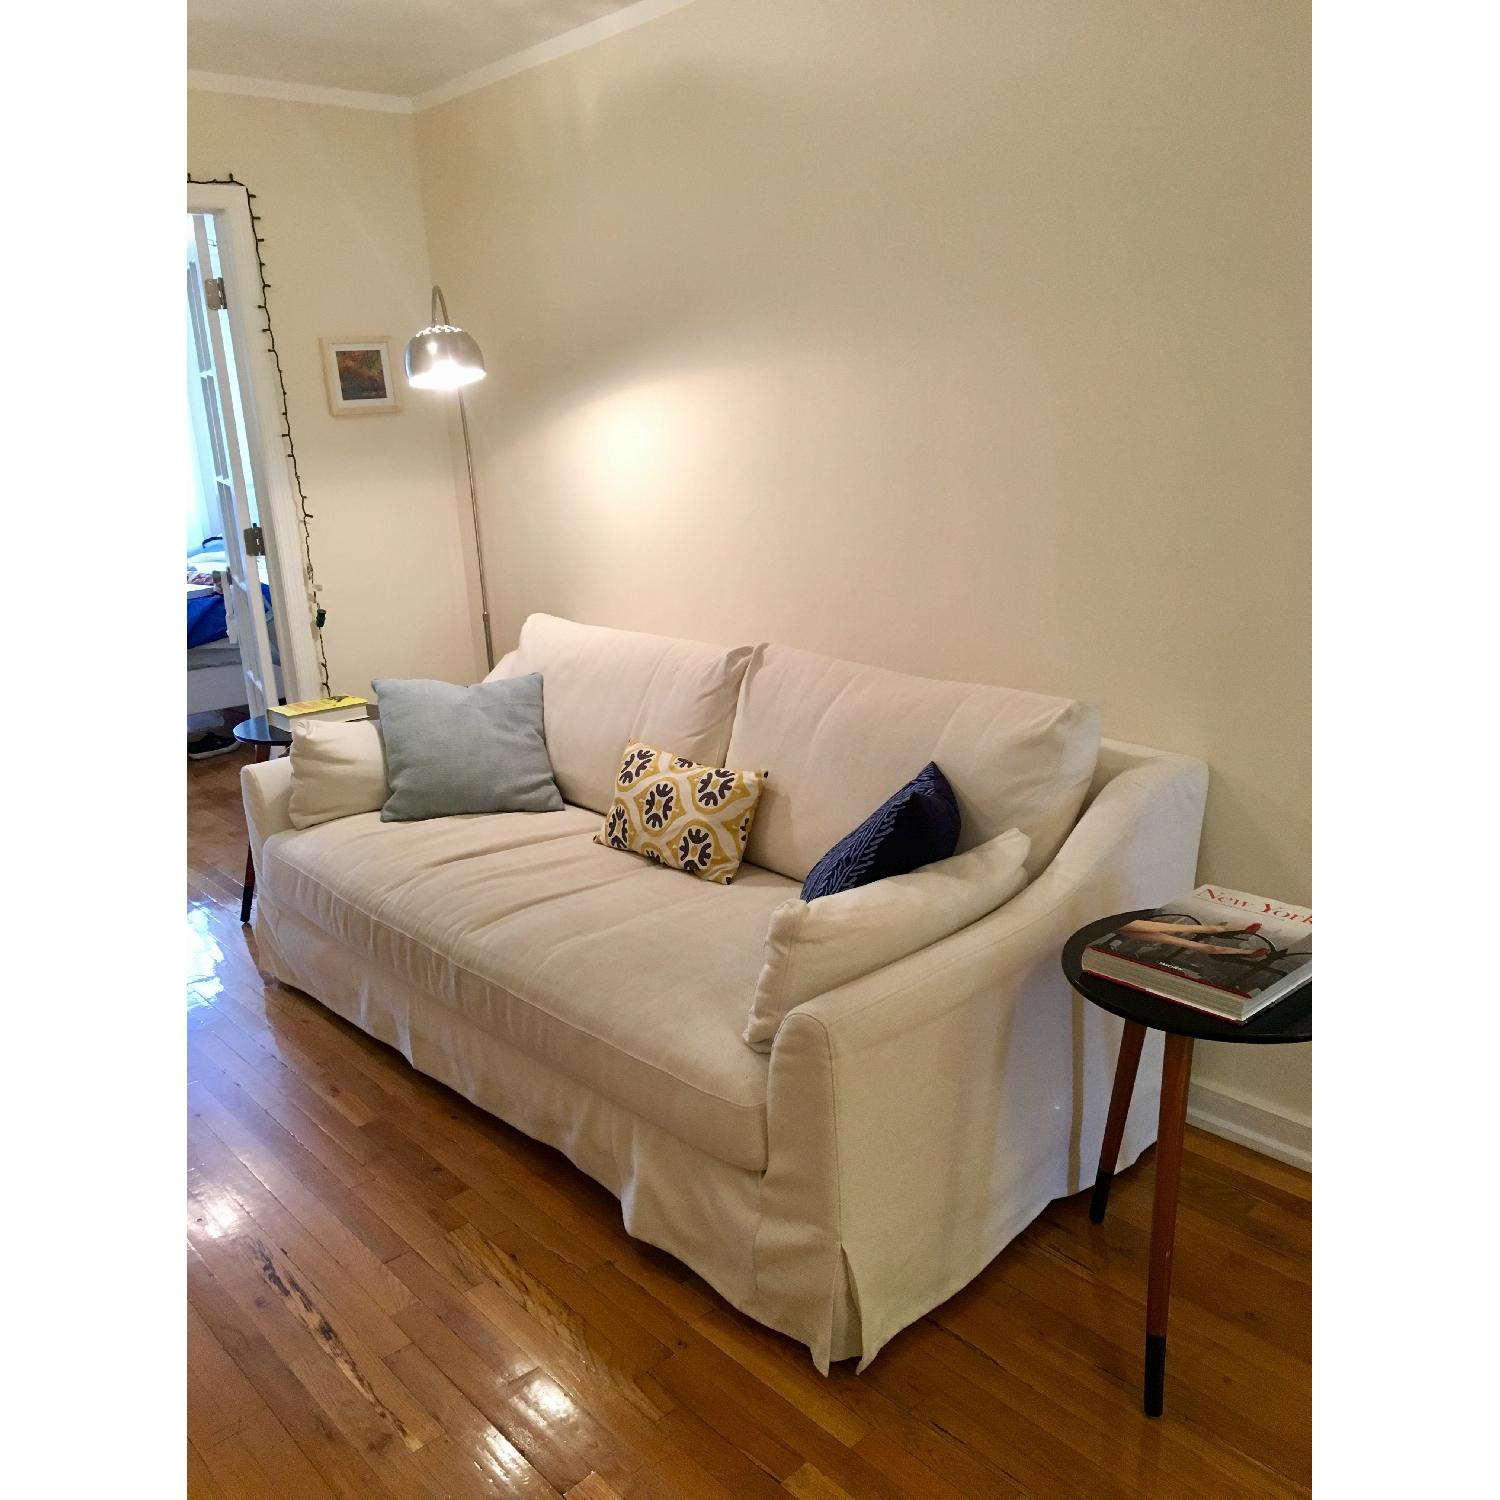 Product key features · suitable for. Ikea Farlov Sofa White - Test 6